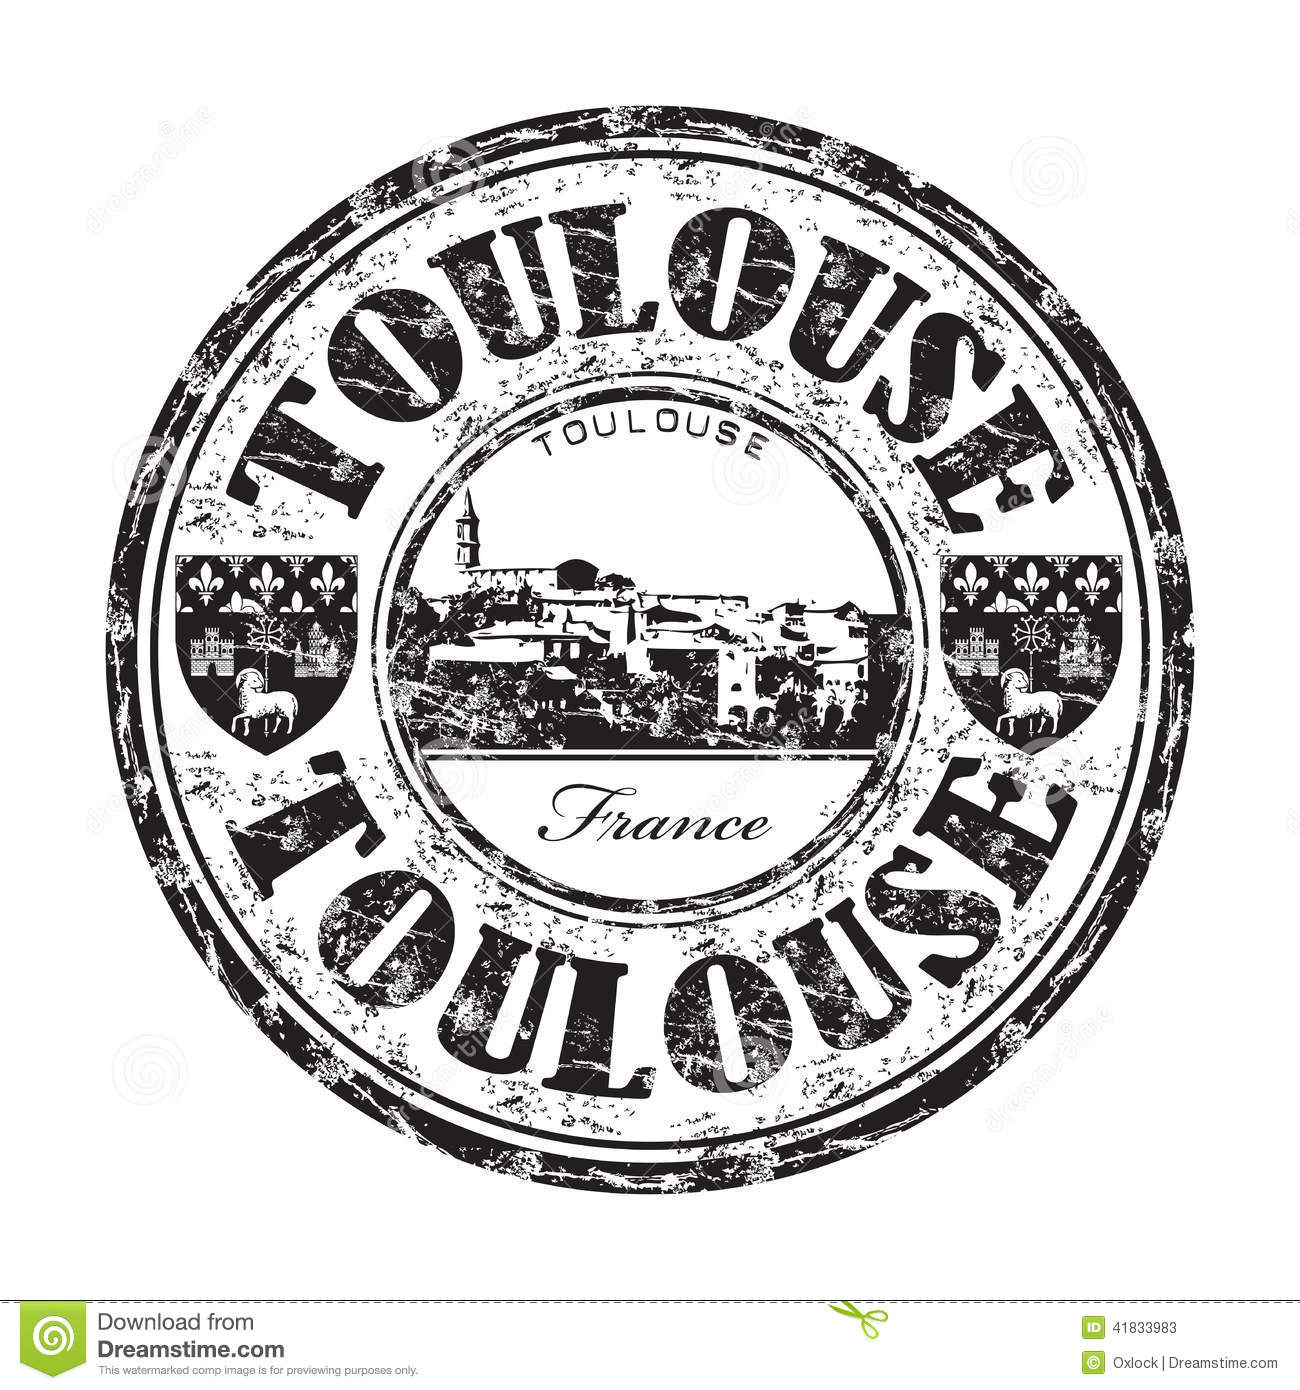 Toulouse Grunge Rubber Stamp Stock Vector.